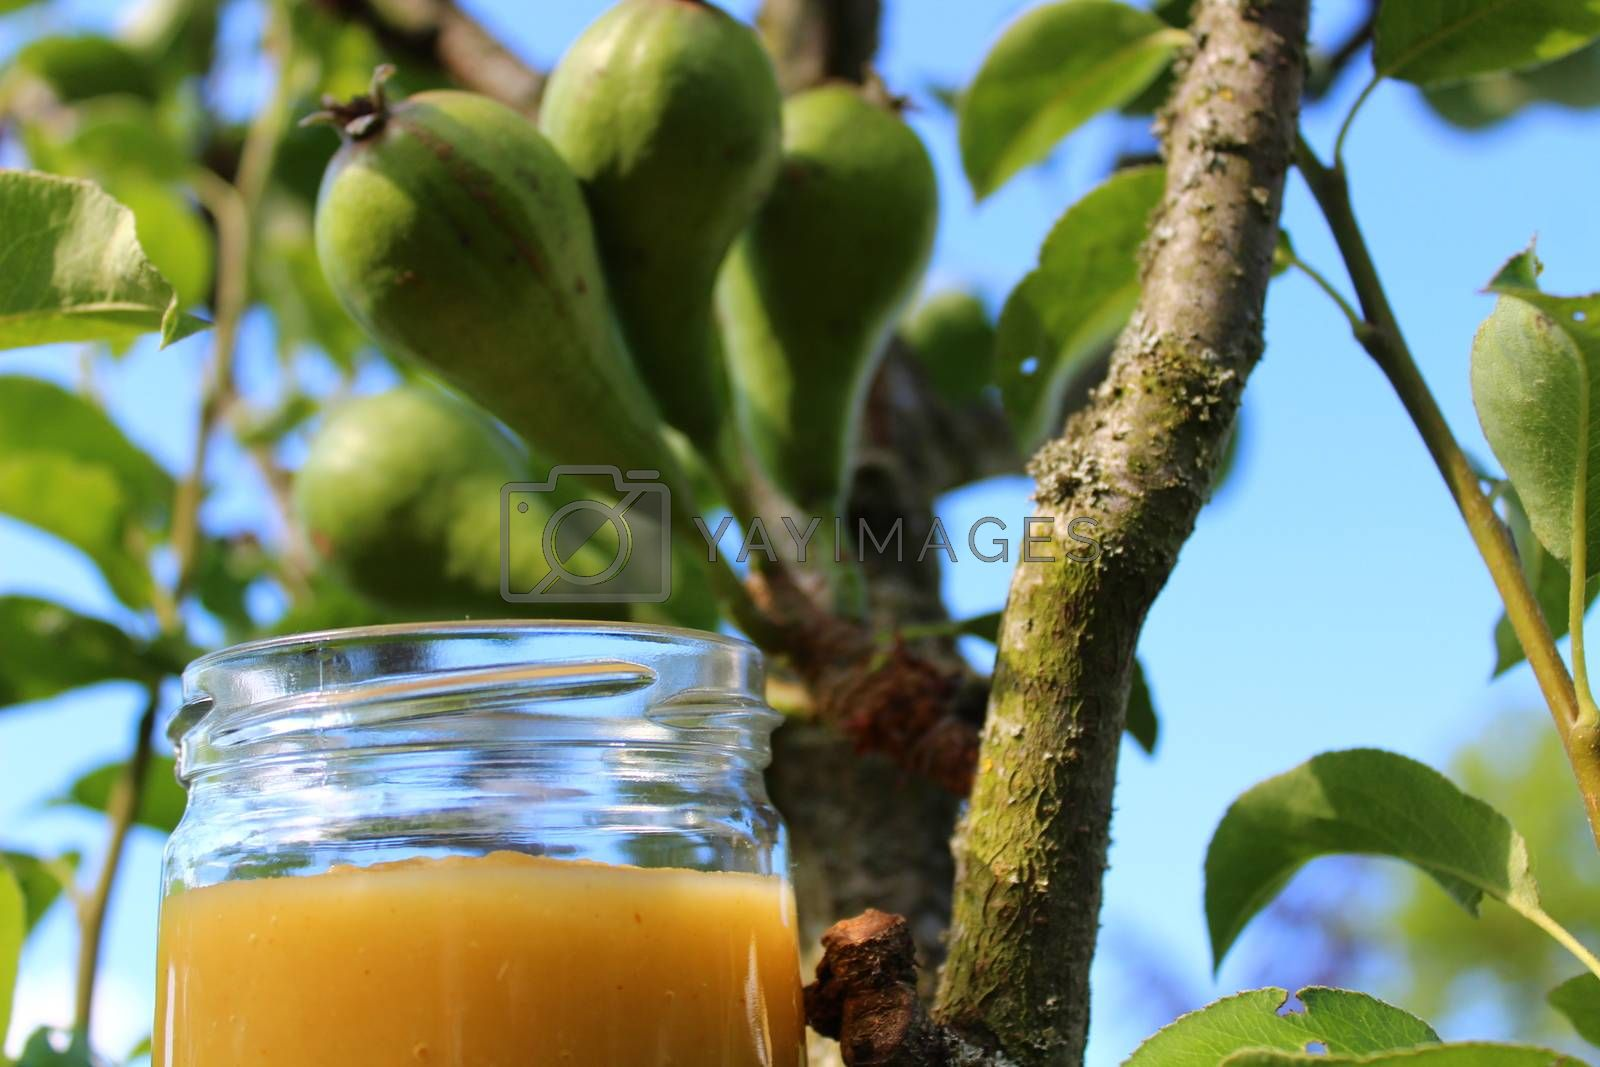 Royalty free image of pear sauce in front of a pear tree by martina_unbehauen